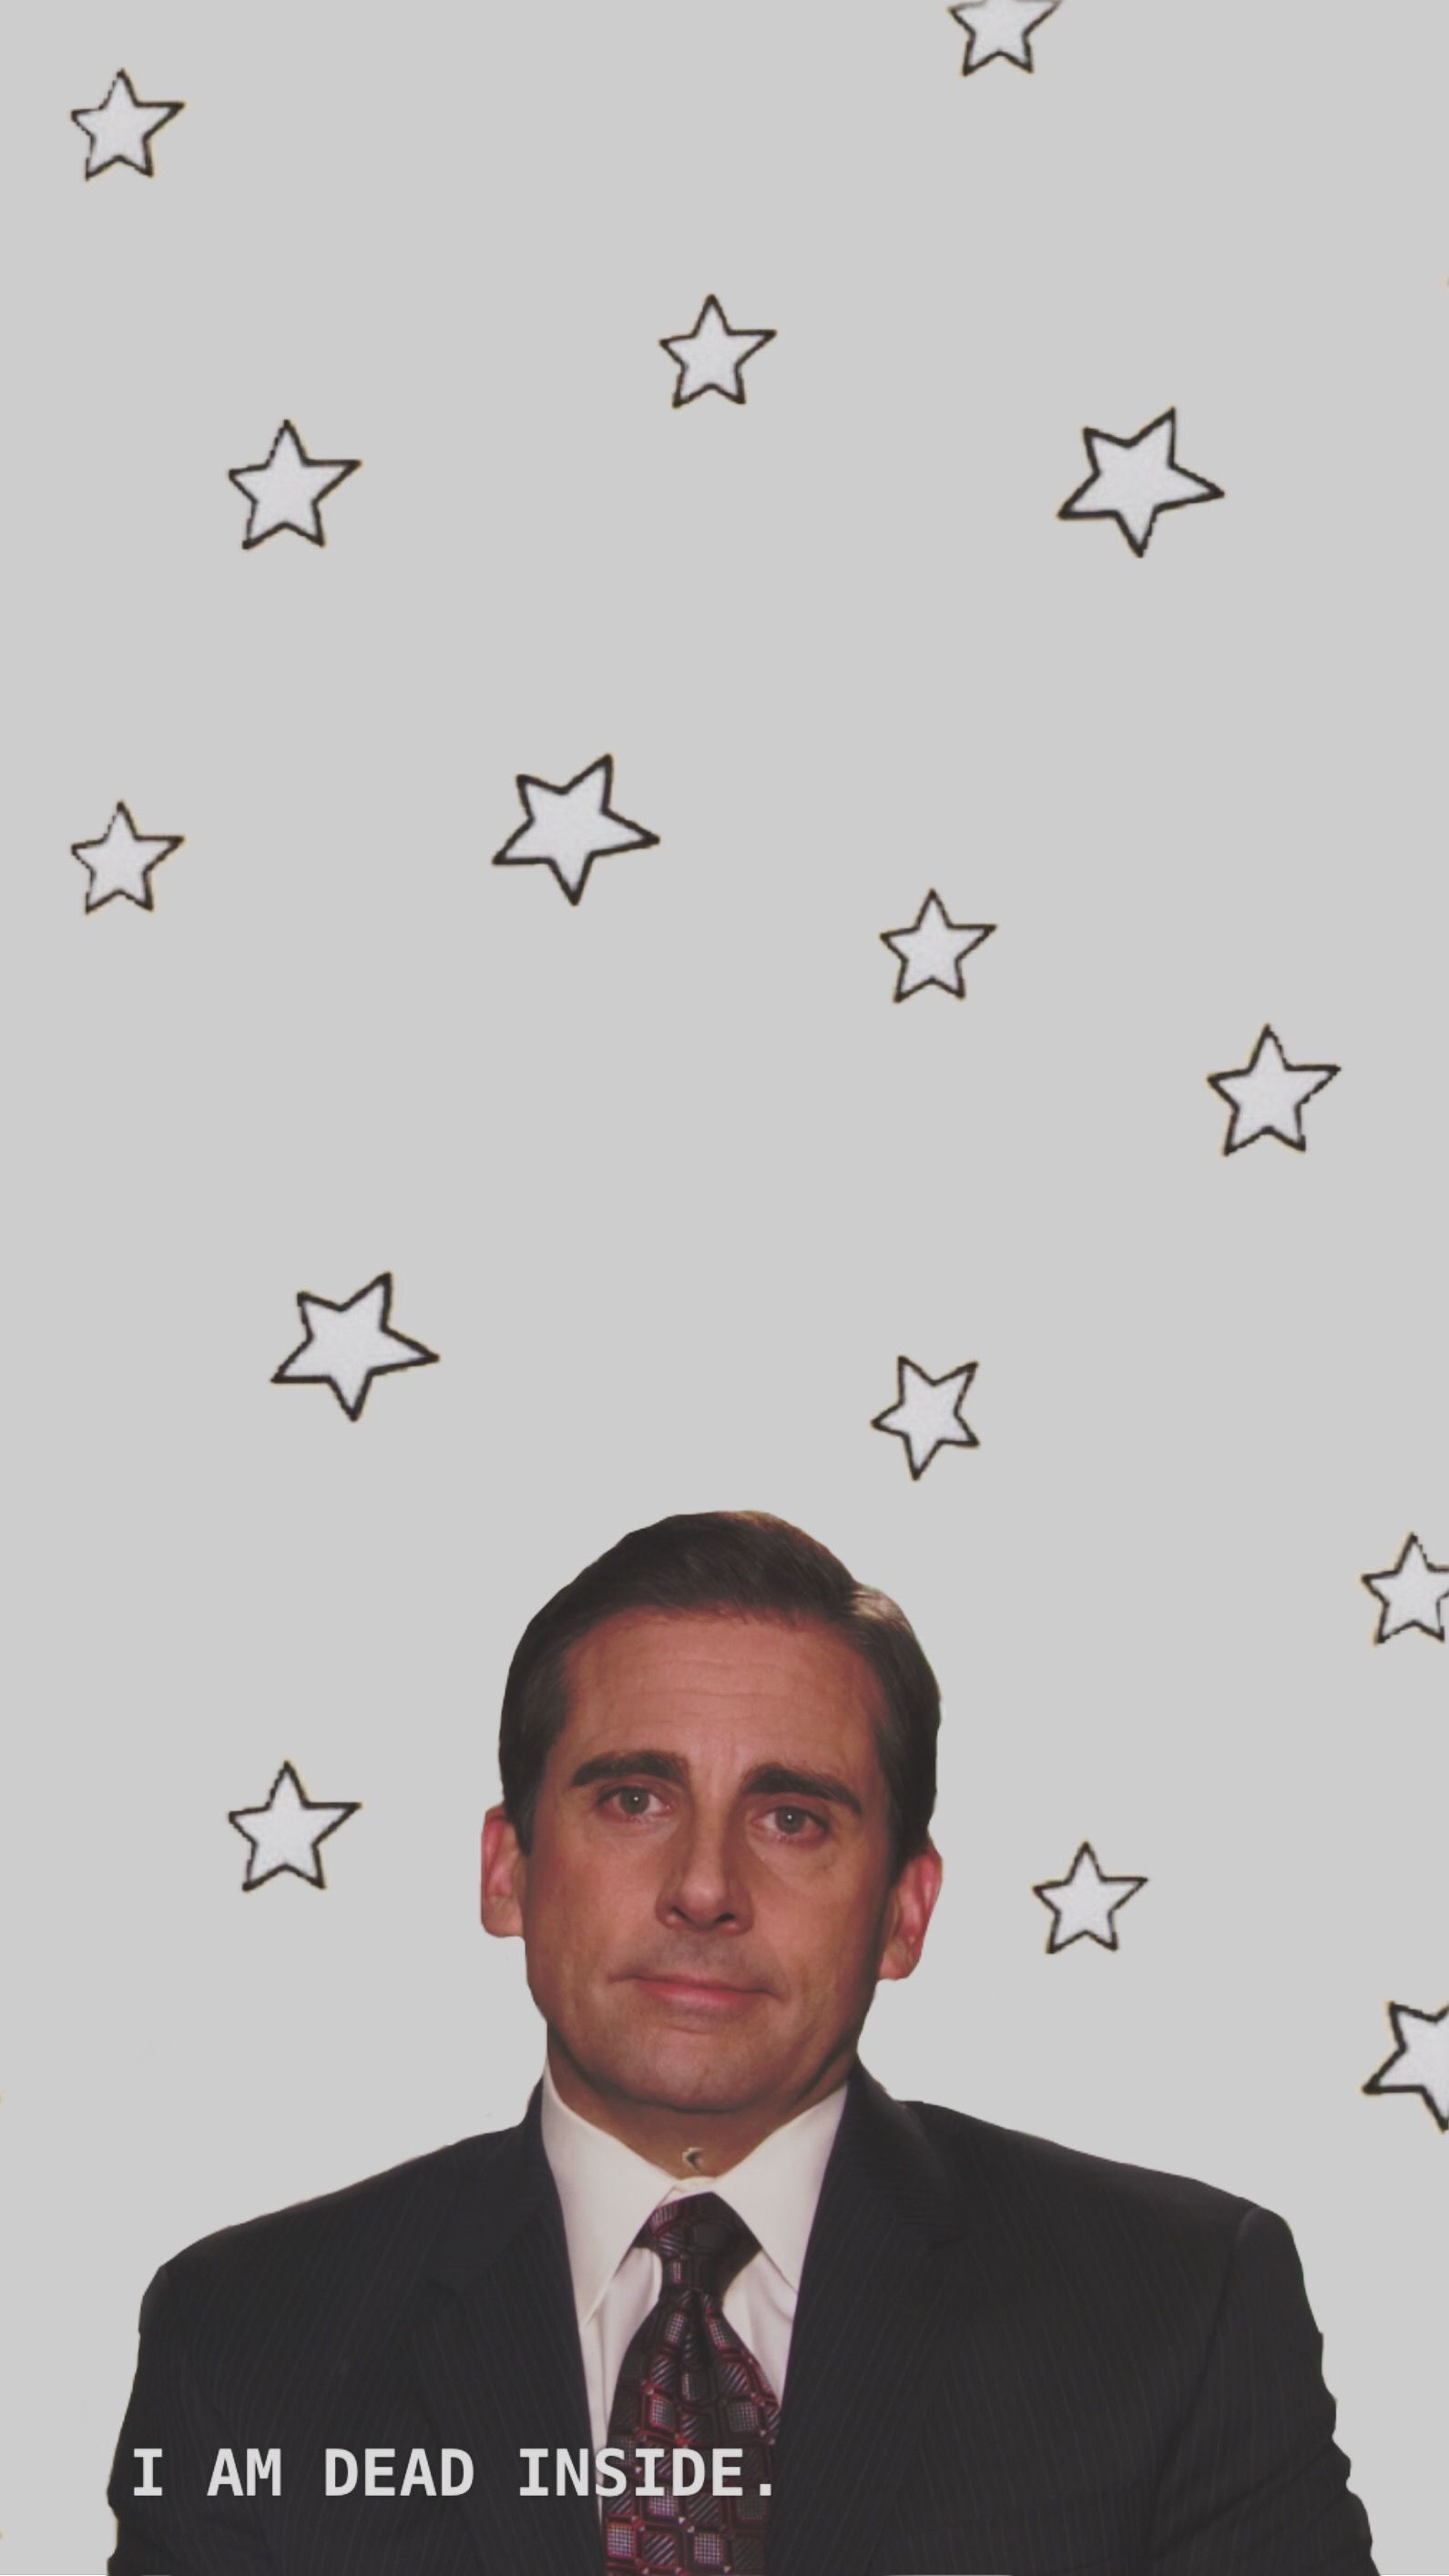 𝙿 𝙸 𝙽 𝚔𝚊𝚝𝚑𝚢𝚎𝚍𝚒𝚝𝚜 Office Wallpaper Iconic Wallpaper Funny Phone Wallpaper